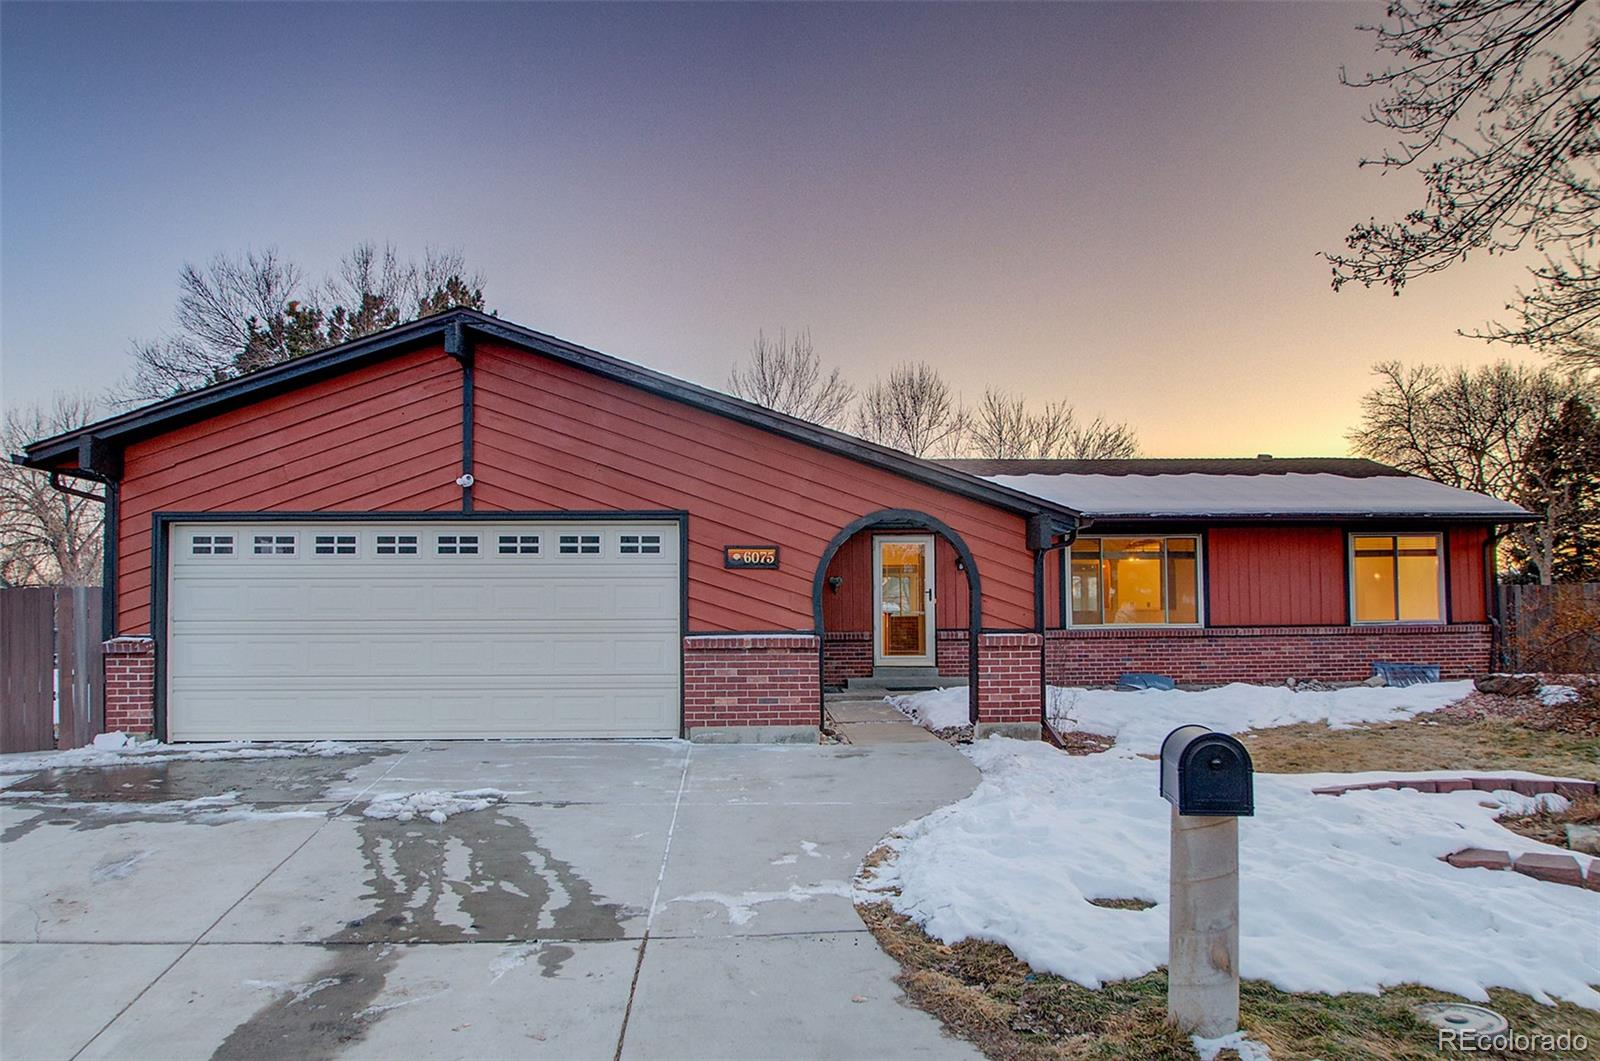 MLS# 2260867 - 2 - 6075 W 82nd Place, Arvada, CO 80003